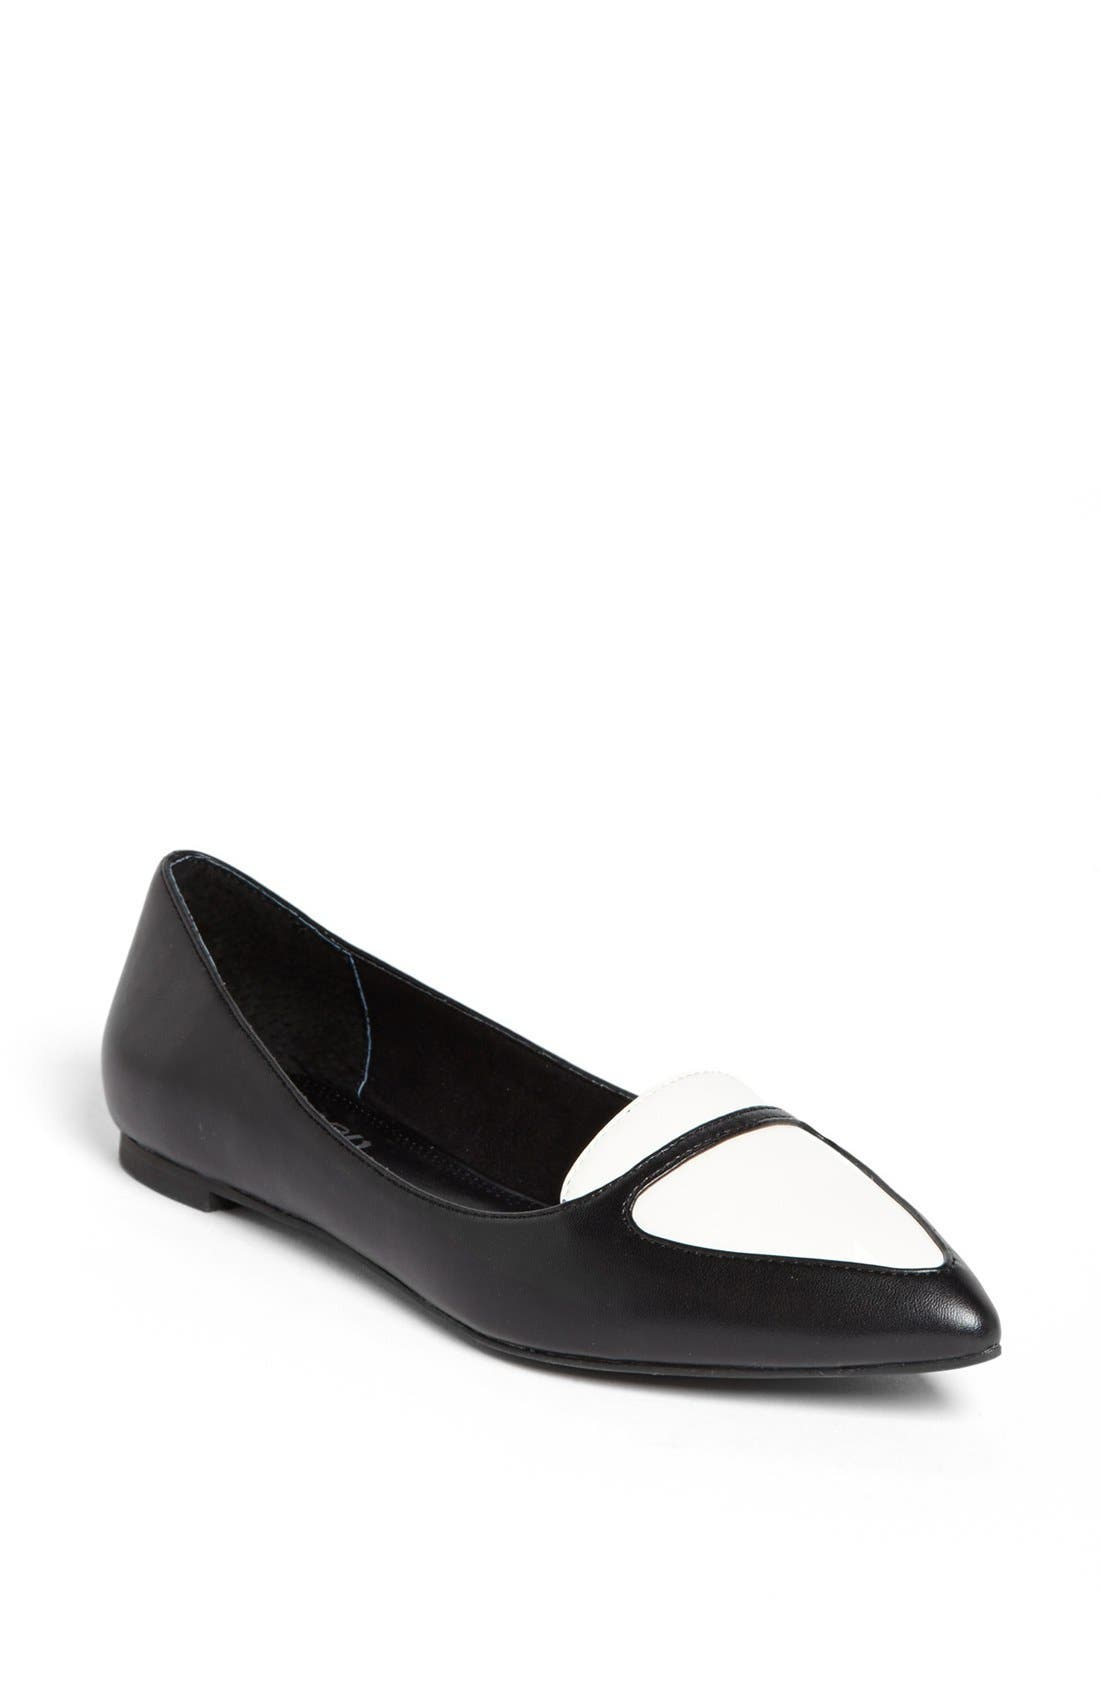 Tildon 'Naples' Pointy Toe Flat